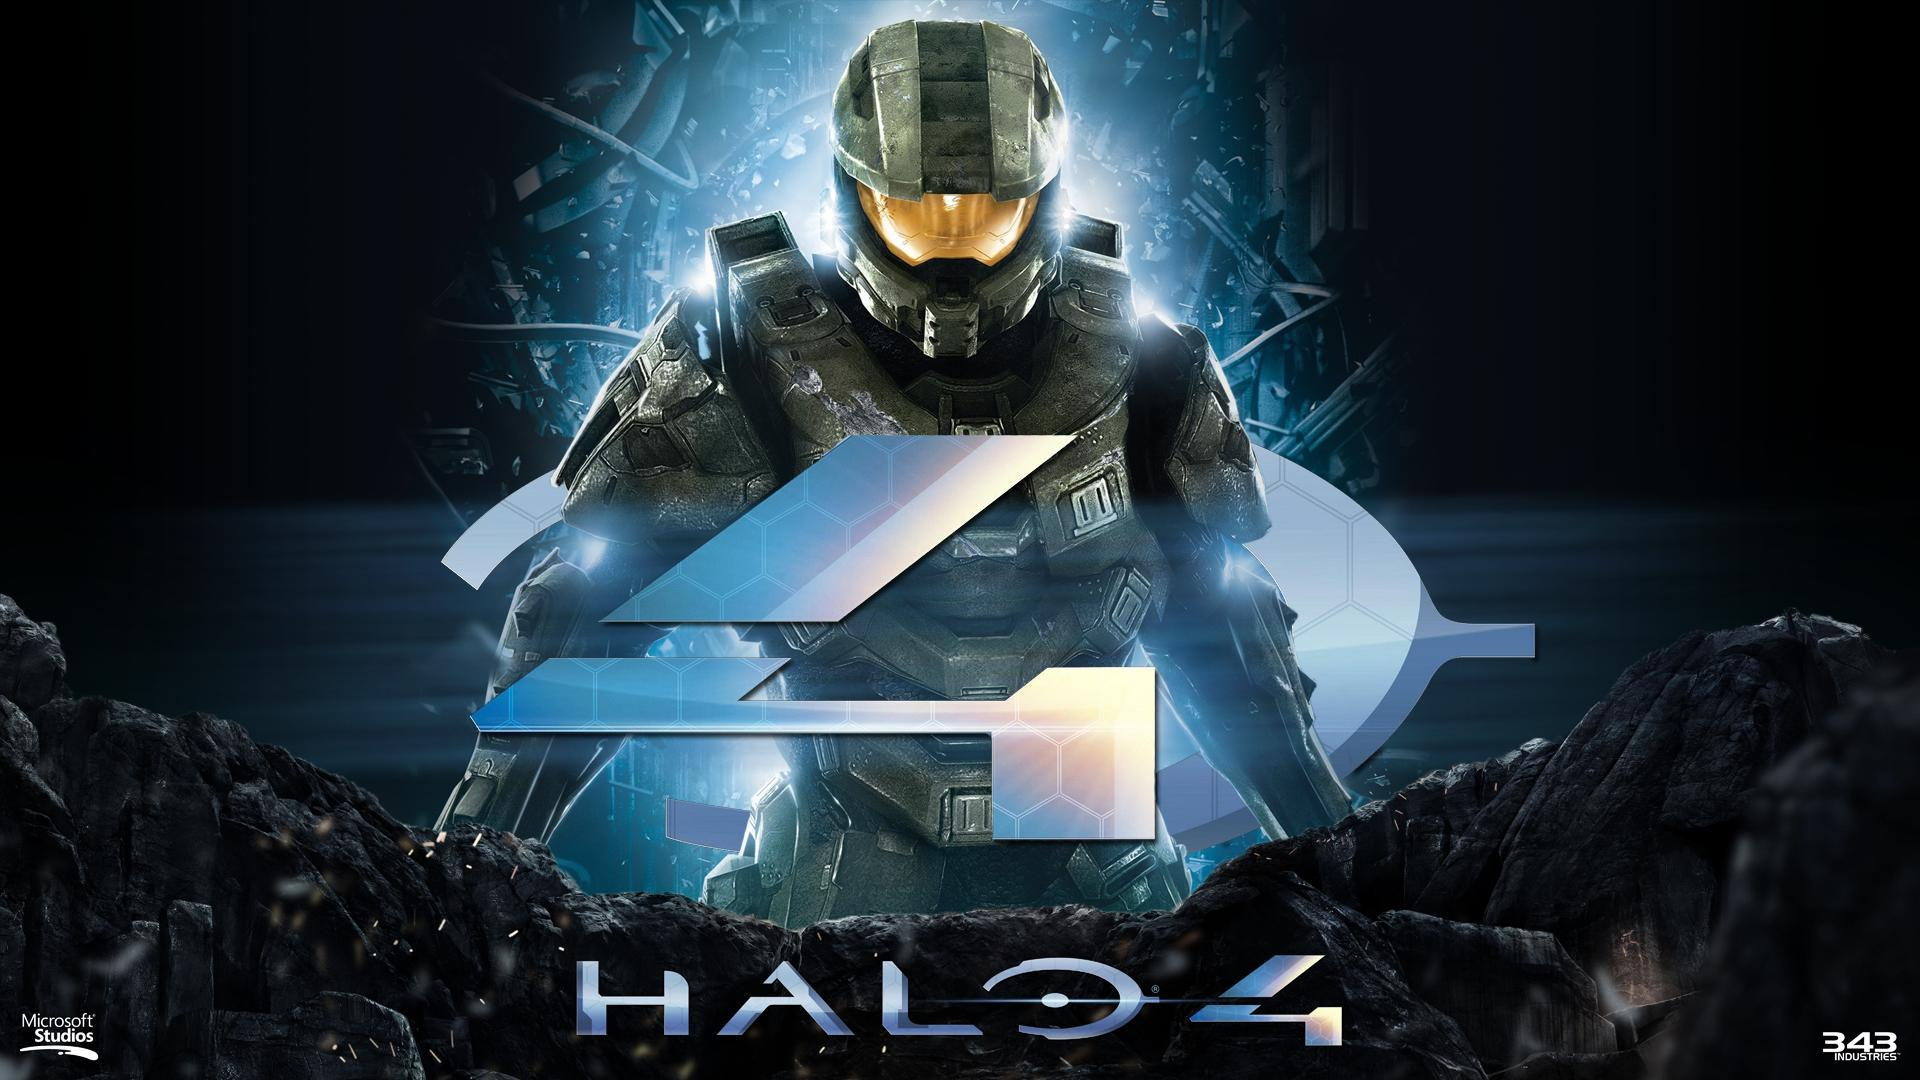 wallpaper free game halo - photo #27